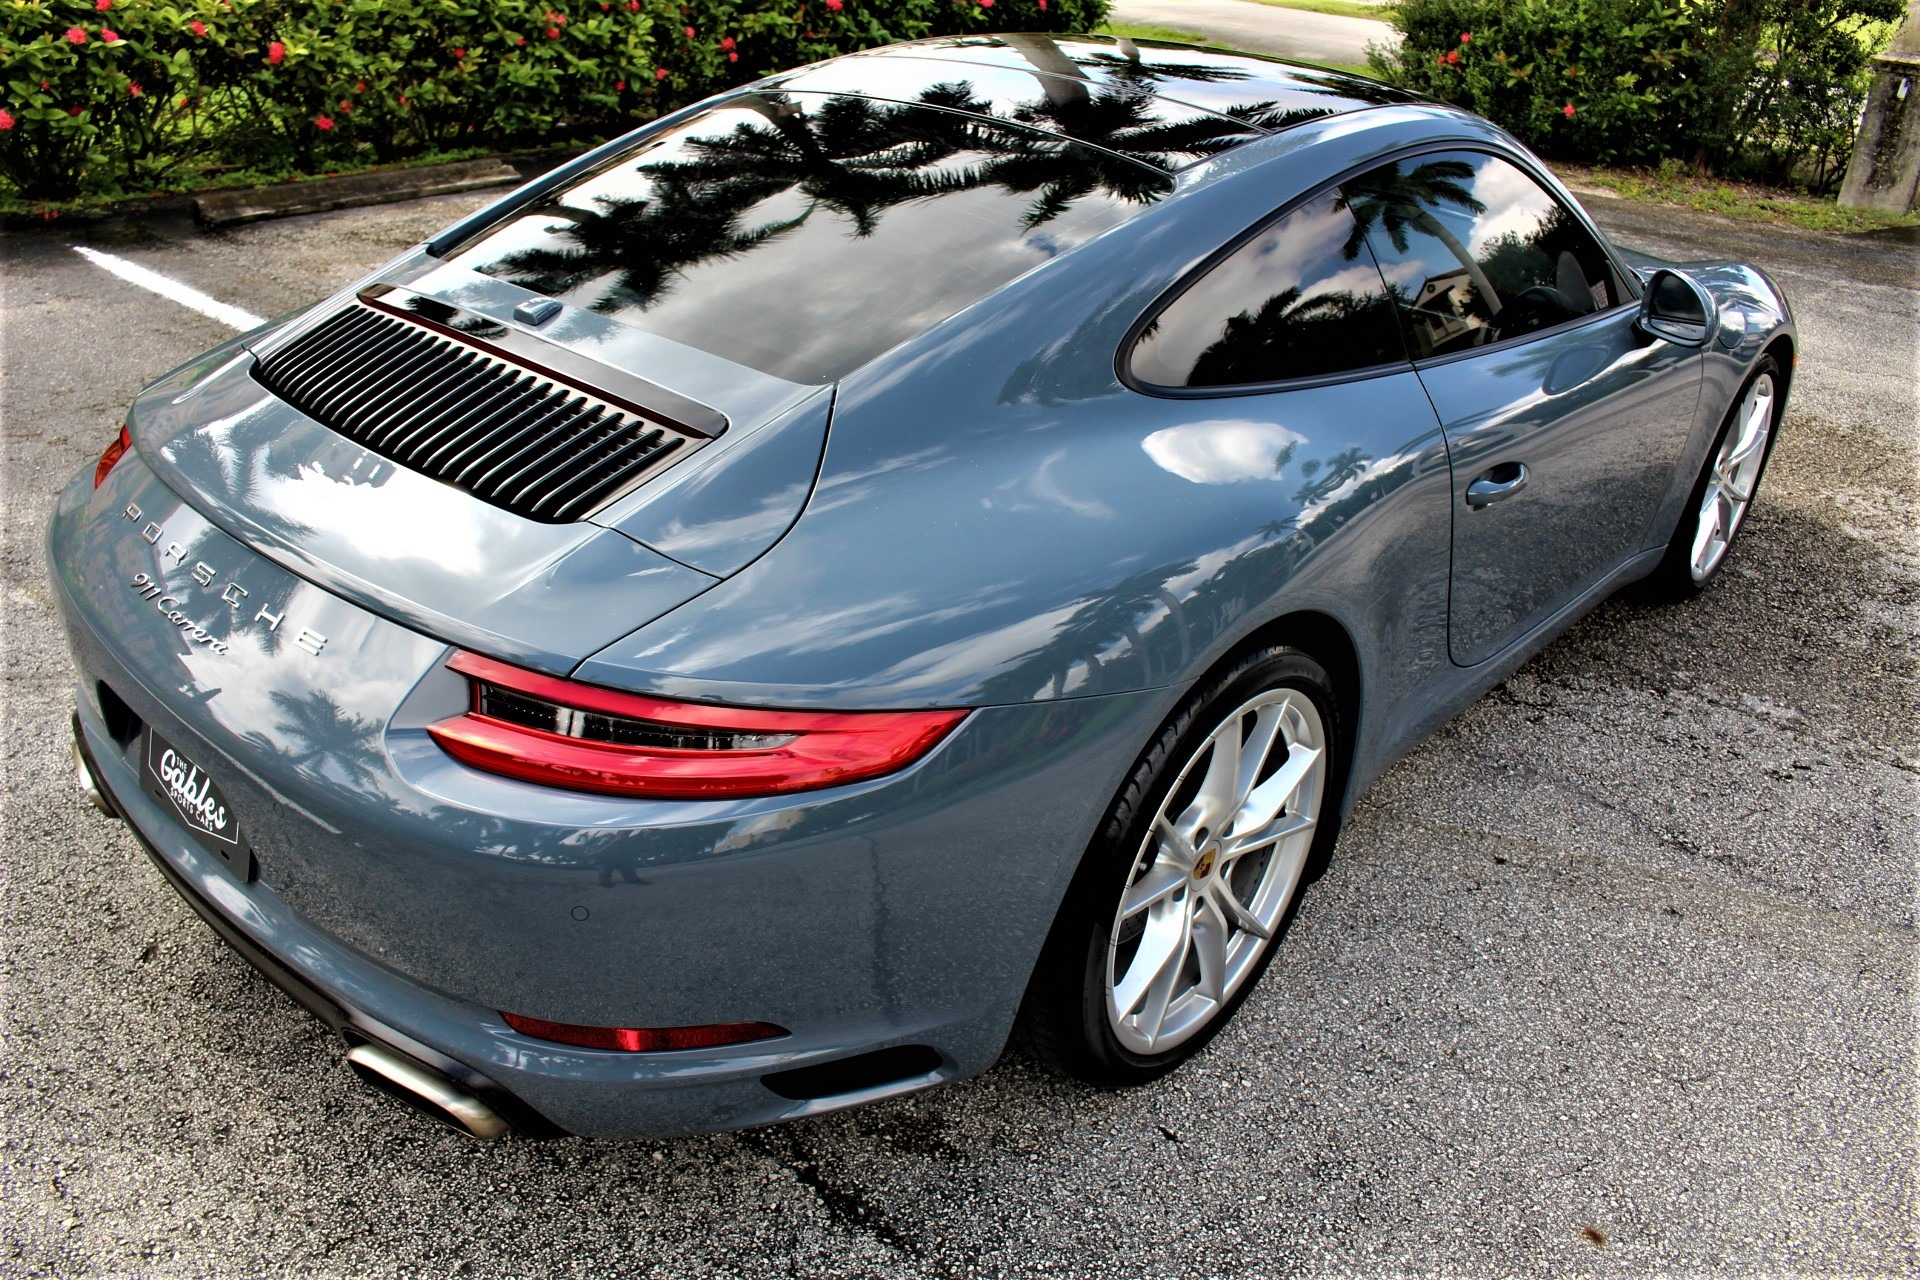 Used 2017 Porsche 911 Carrera for sale Sold at The Gables Sports Cars in Miami FL 33146 2